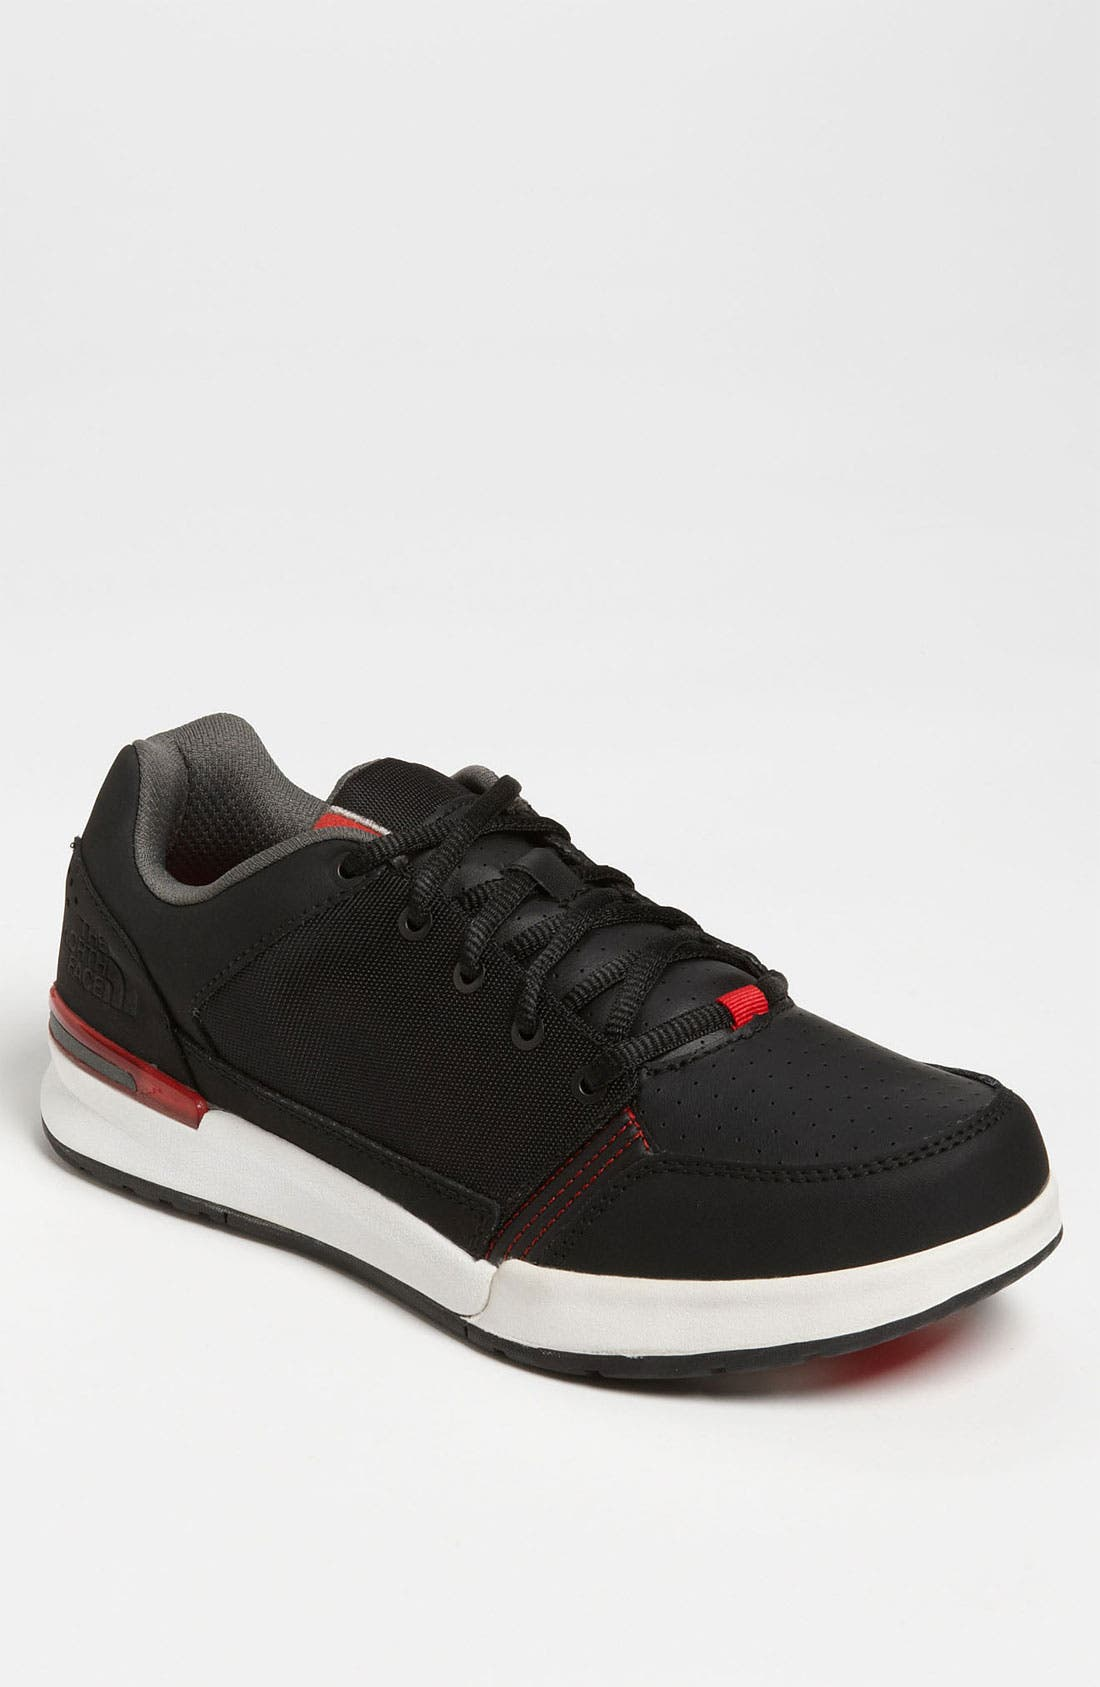 Main Image - The North Face 'Shifter' Sneaker